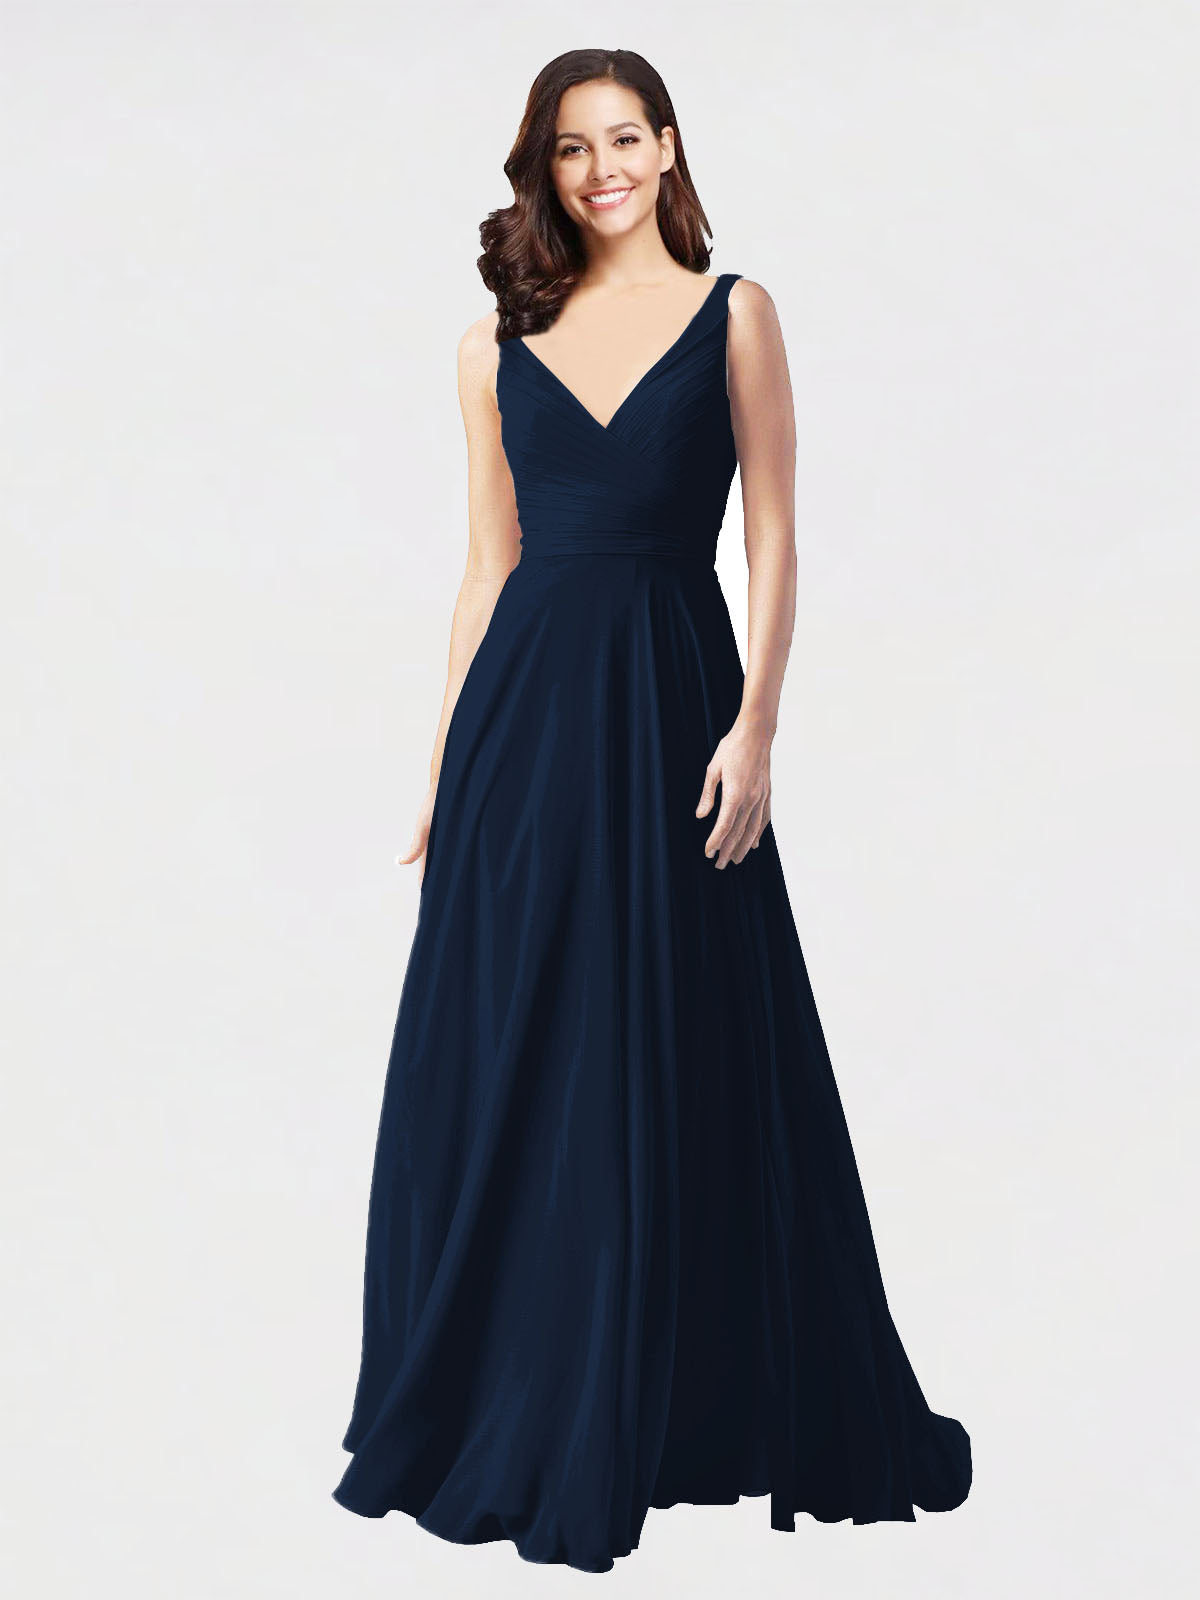 Long A-Line V-Neck Sleeveless Dark Navy Chiffon Bridesmaid Dress Bernice